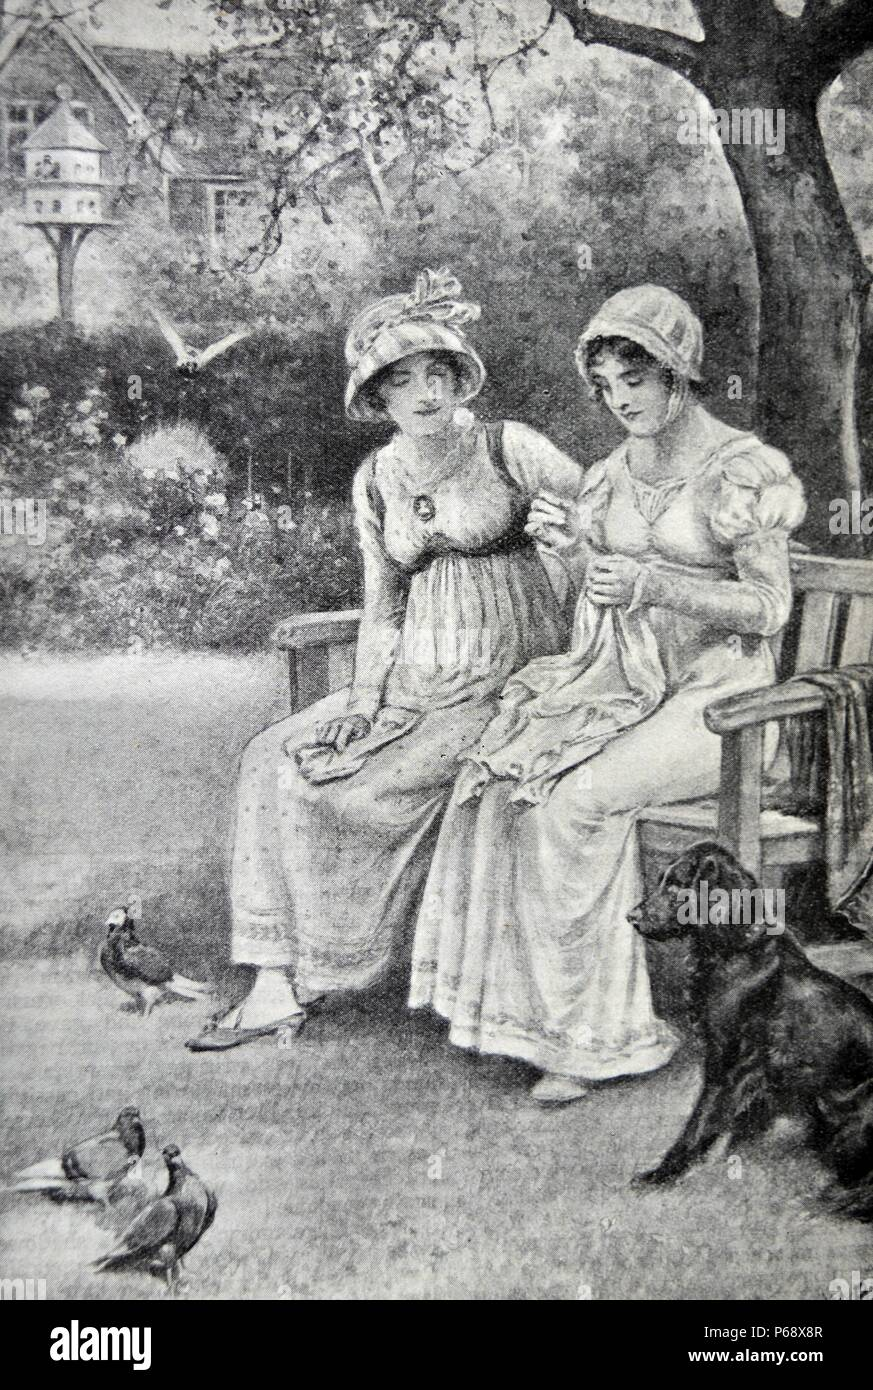 Engraving of Jane Austen and her sister Cassandra doing needlework in the rectory garden. Dated 1810 - Stock Image